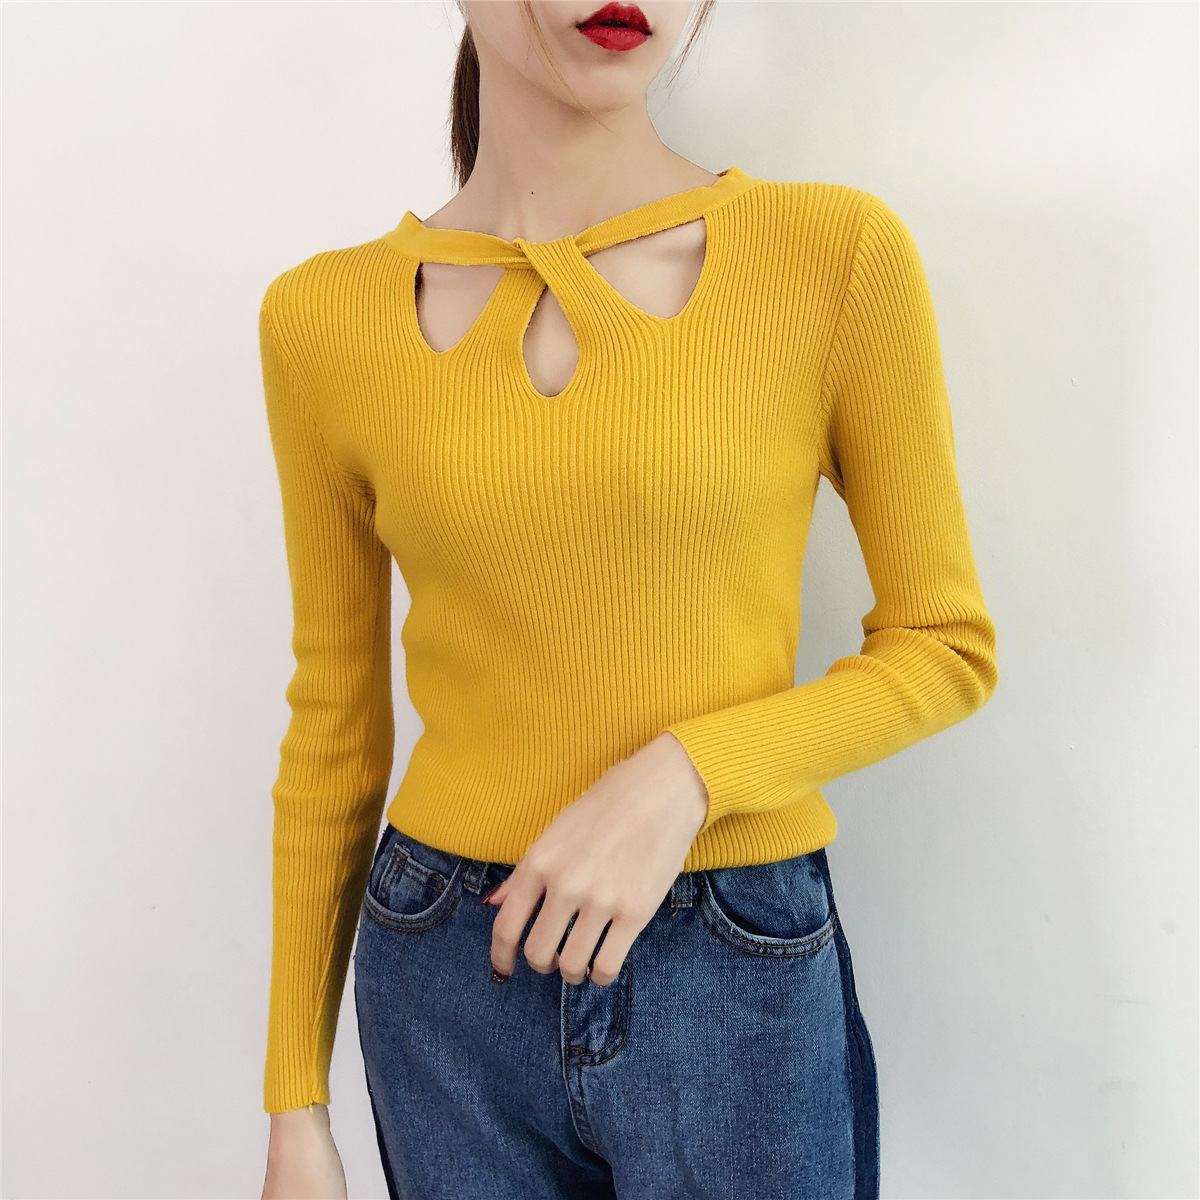 2020 Crewneck Sexy Hollow Knit Sweater Women's Pullover Autumn And Winter Long Sleeve Slim Bottoming Shirt Top Sweater C107